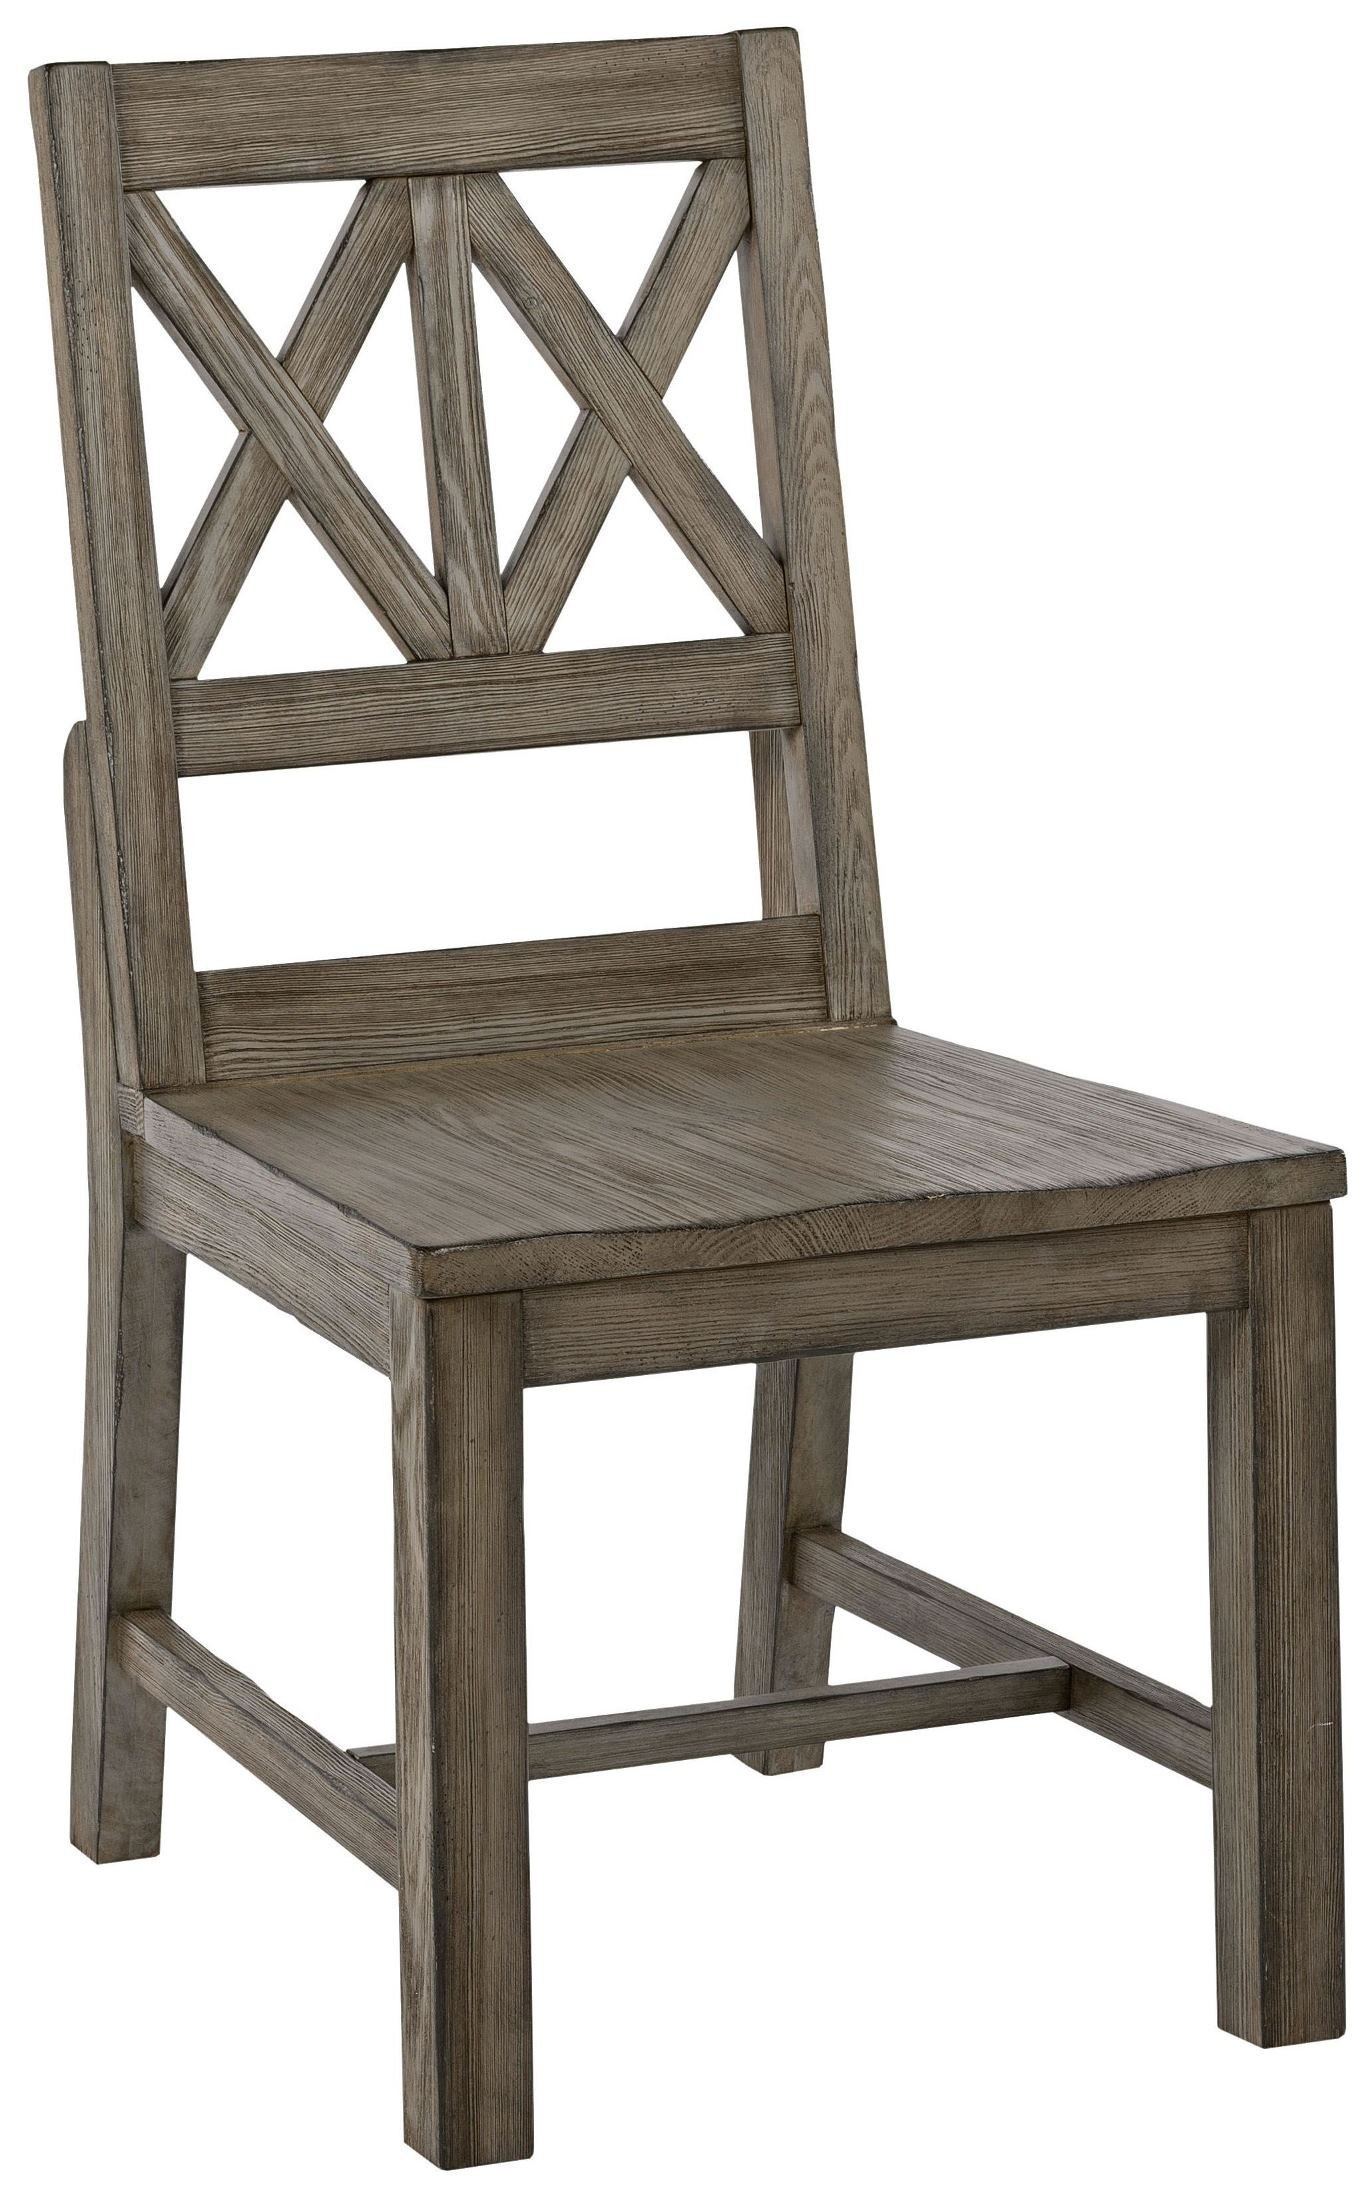 Driftwood Chair Foundry Driftwood Side Chair From Kincaid 59 061